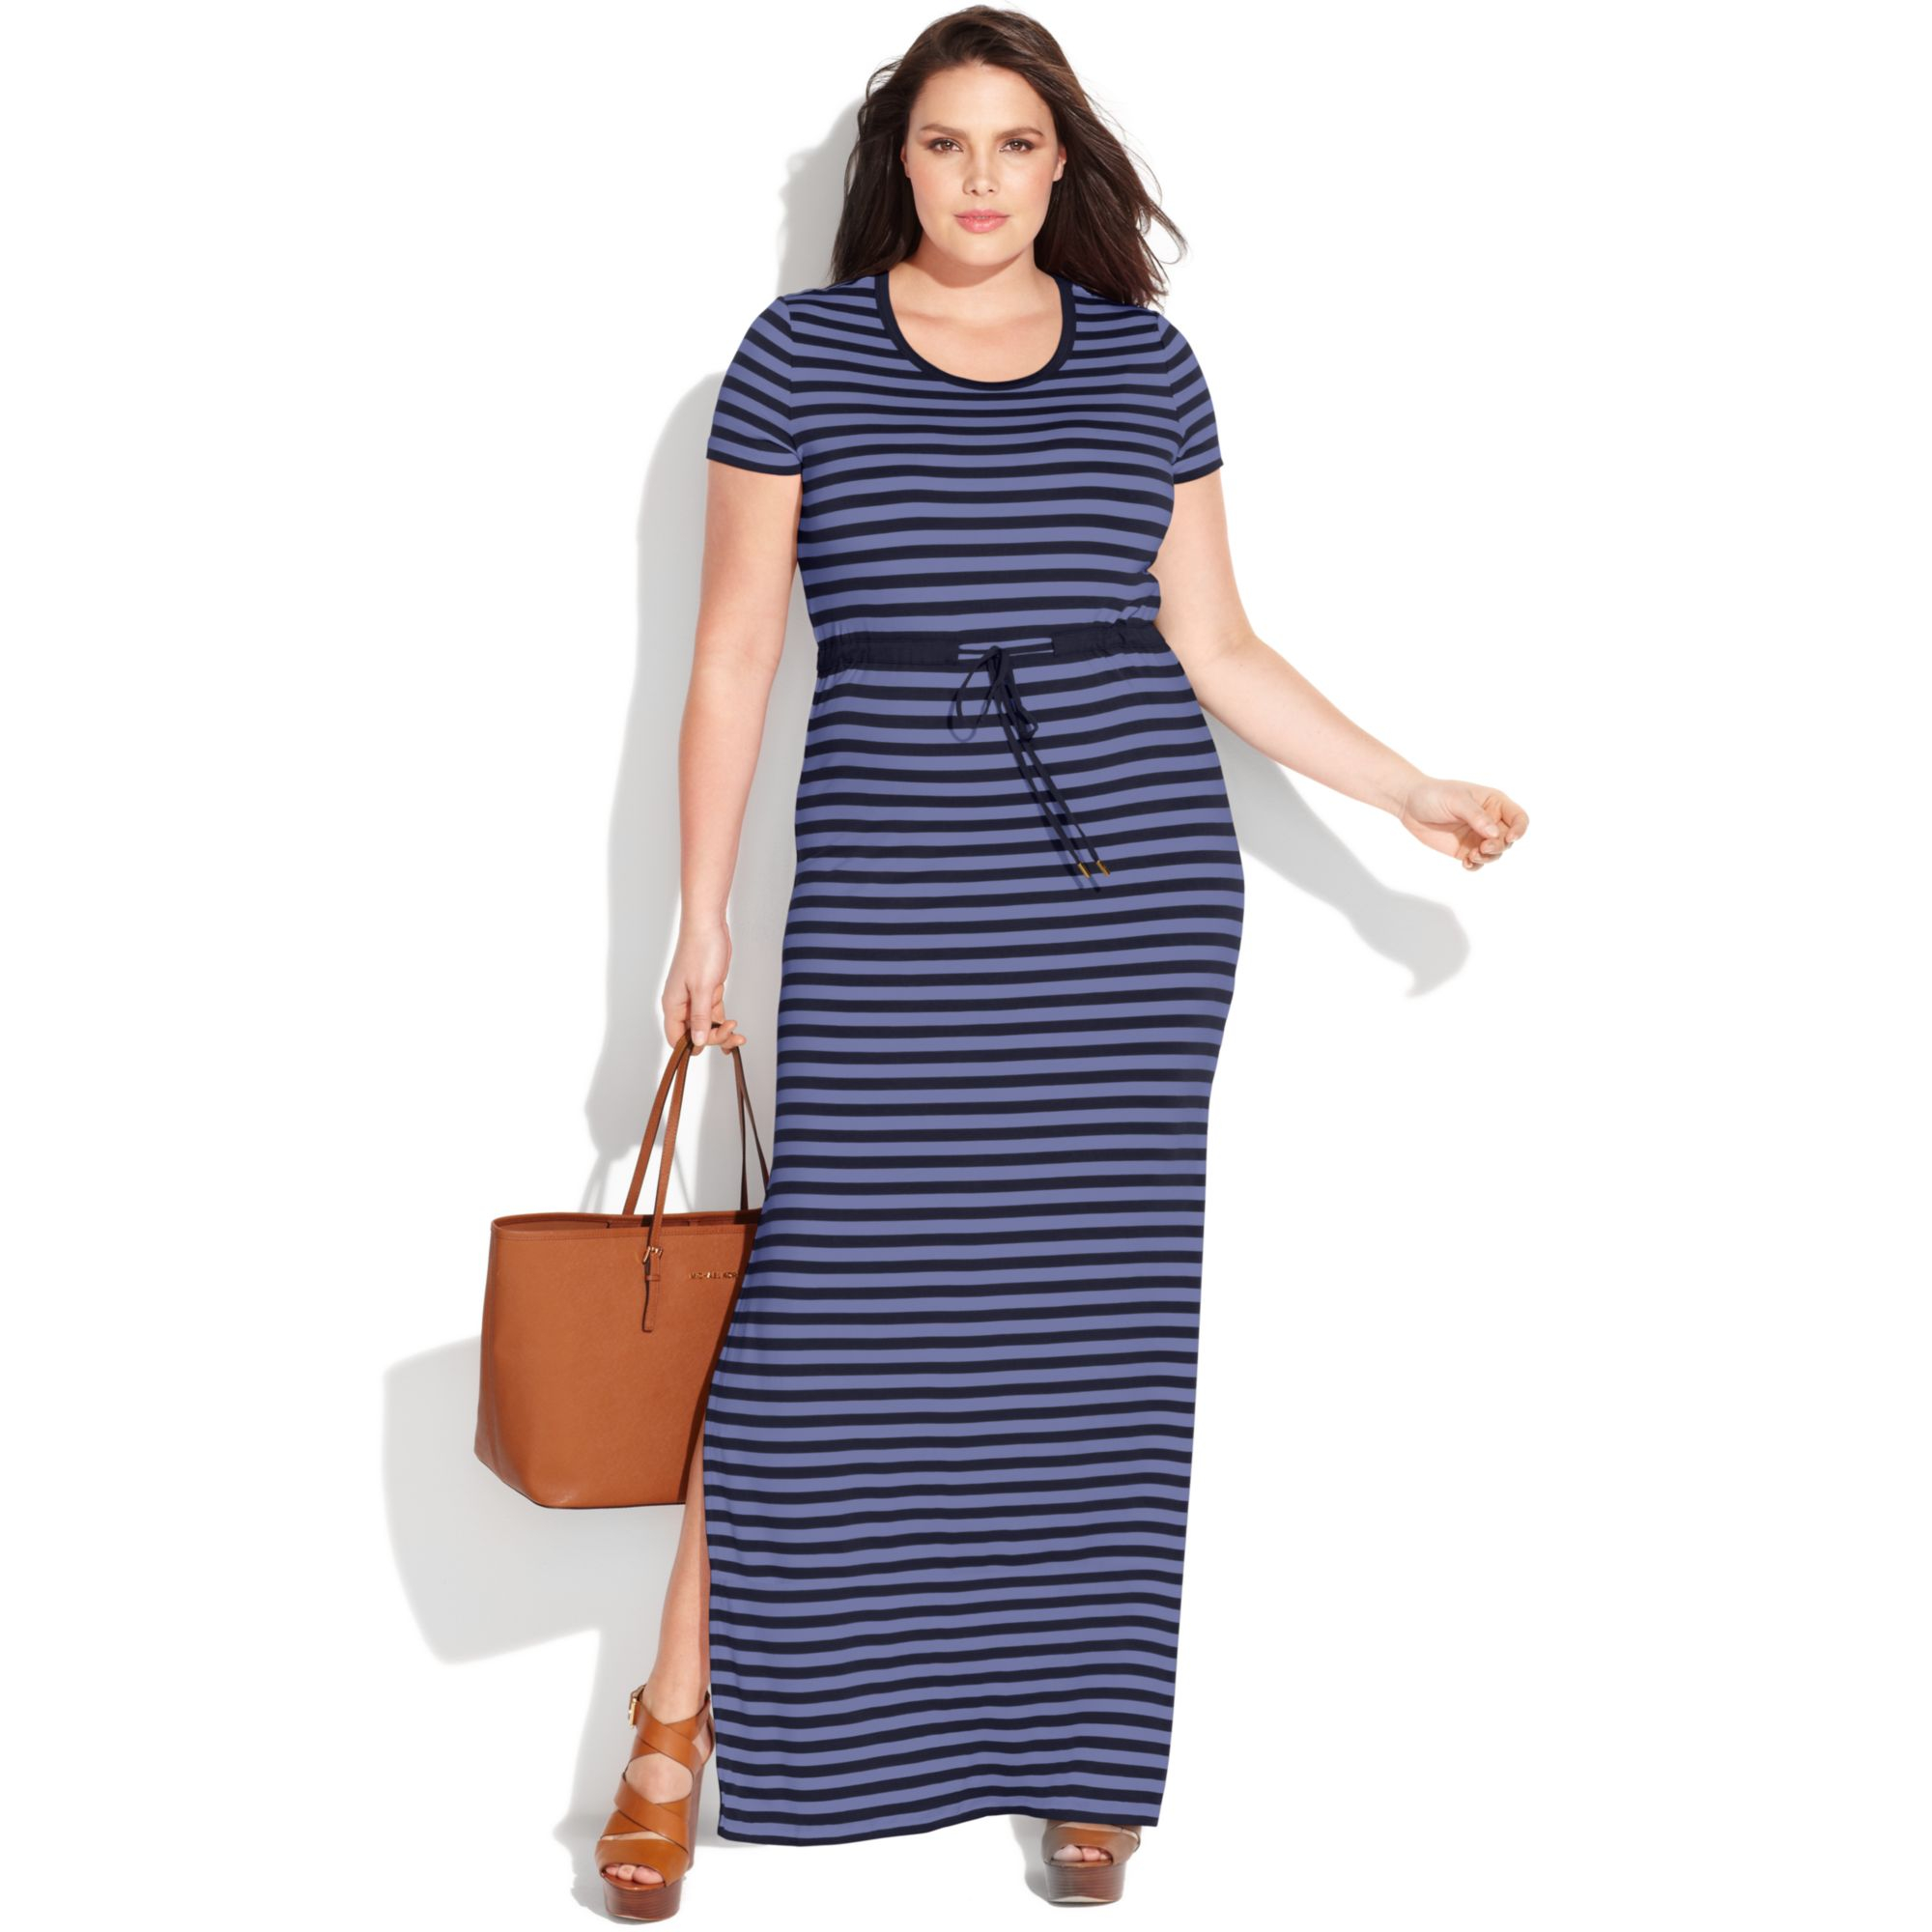 Lyst - Michael kors Plus Size Short Sleeve Striped Maxi Dress in Blue